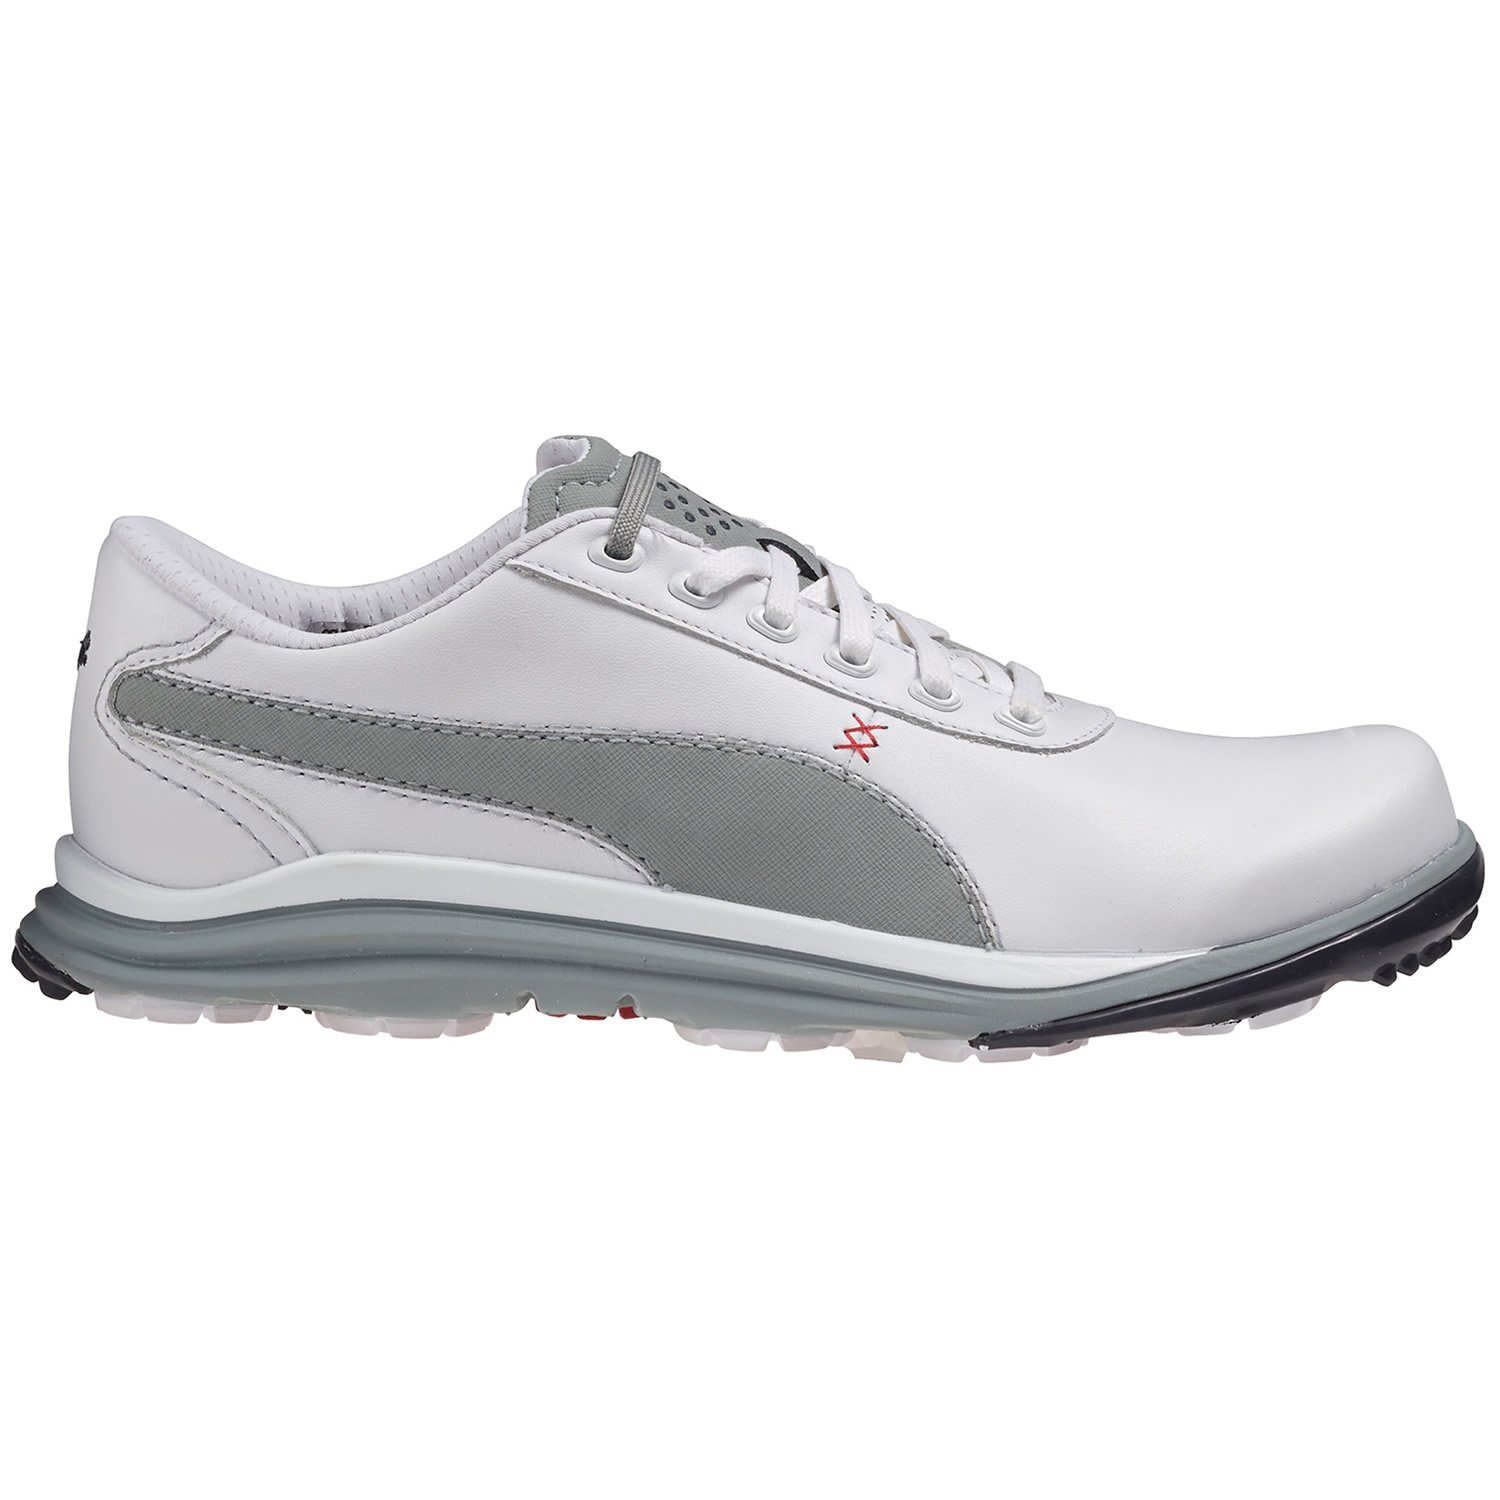 Amazon.com   Puma BioDrive Leather Men Golfschuhe Golf 188337 02 white    Shoes ed9d279a5524a